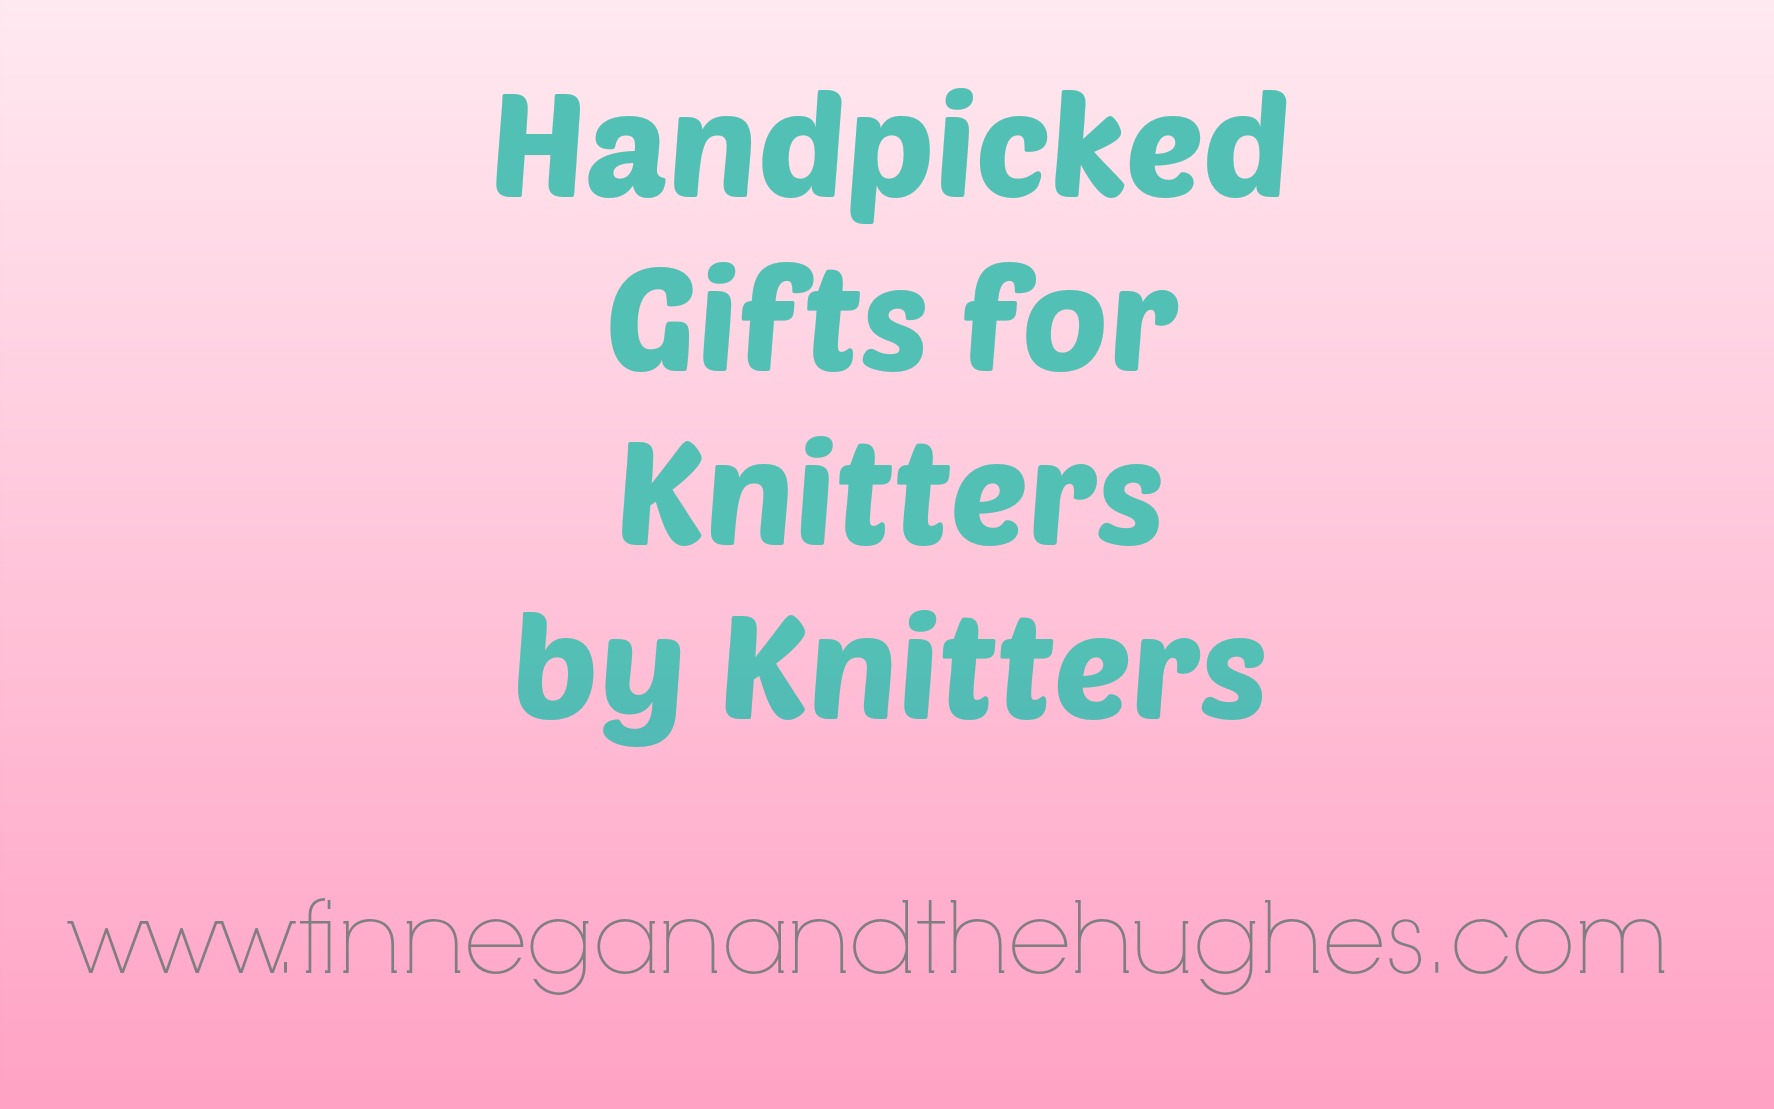 Holiday Gifts for Knitters